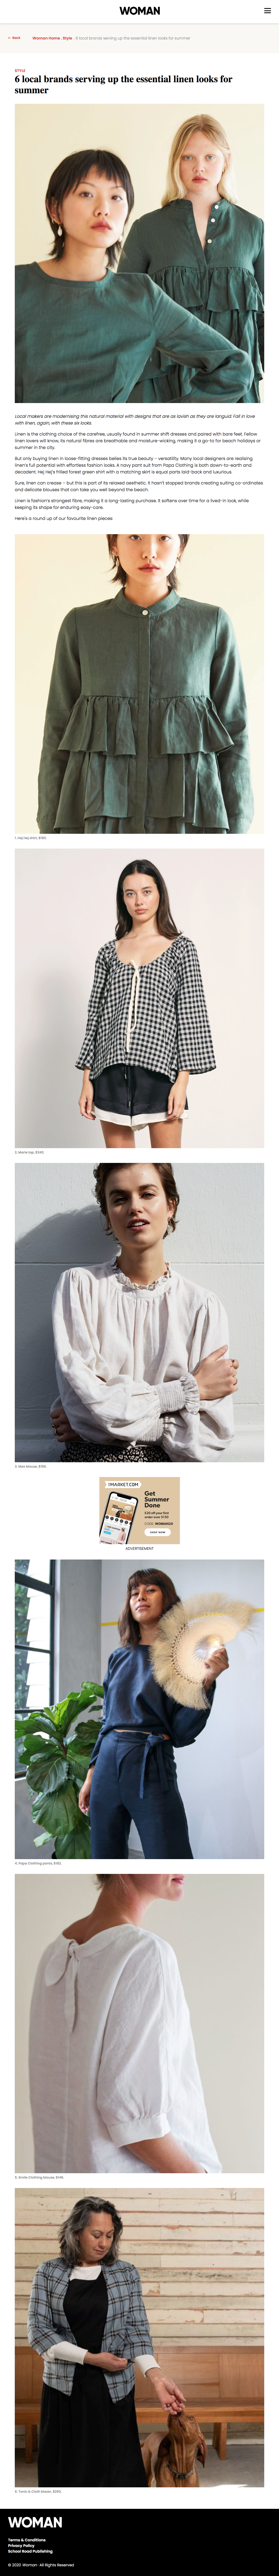 hej hej | WOMAN | 6 local brands serving up the essential linen looks for summer